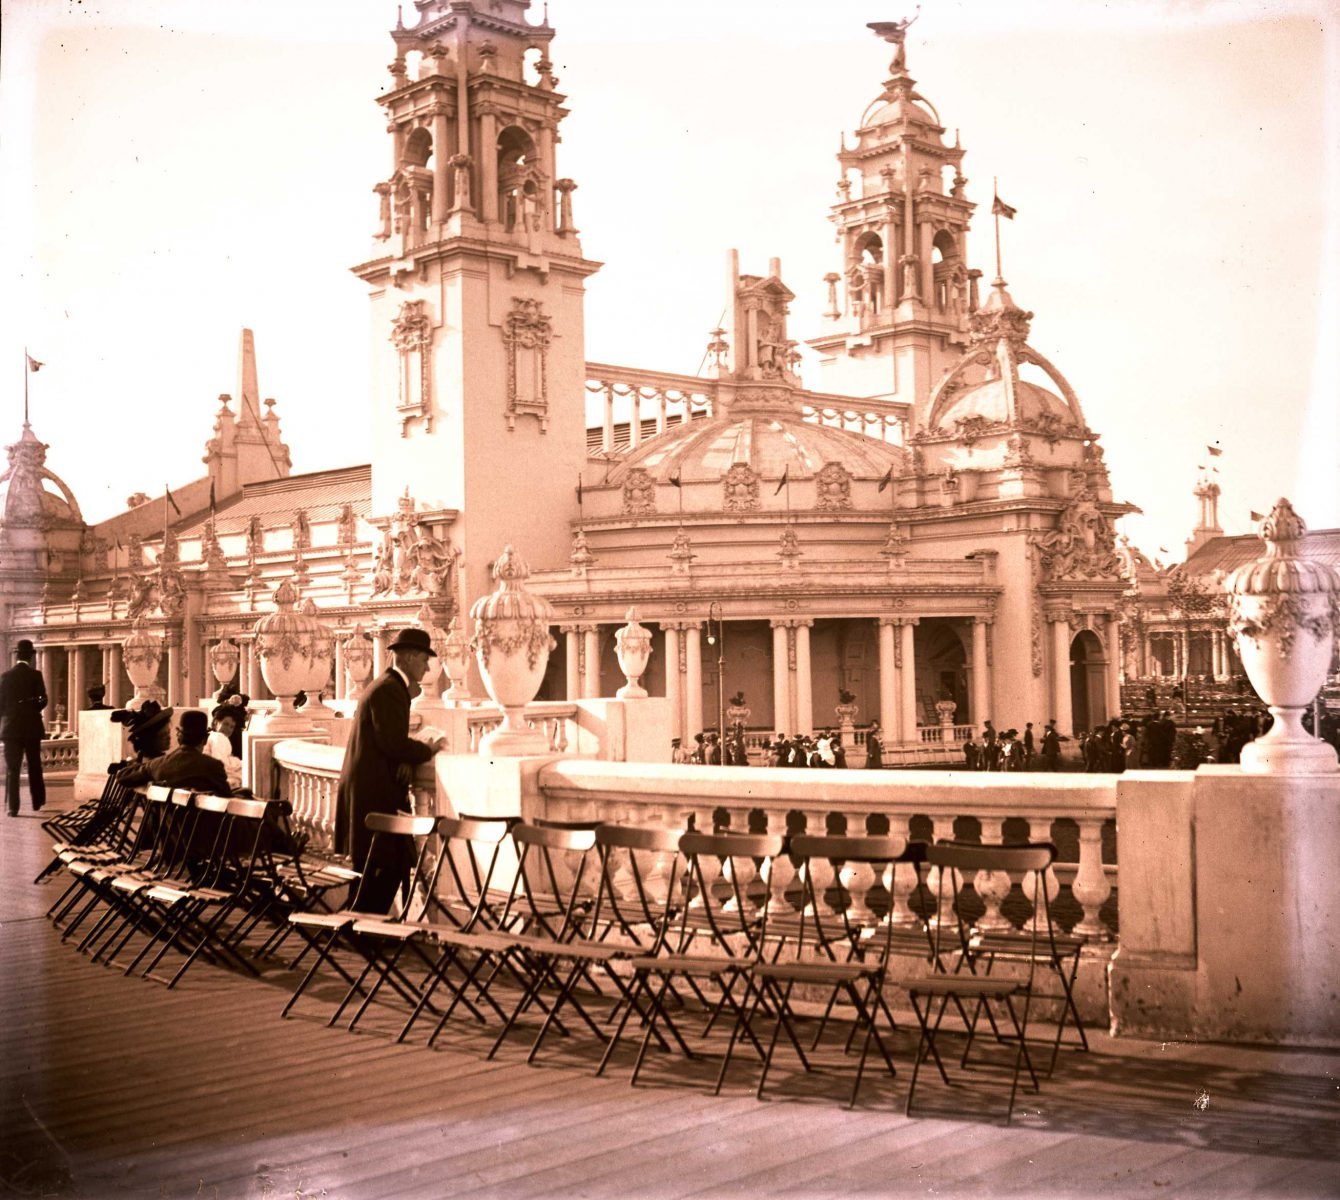 The Franco-British Exhibition of 1908